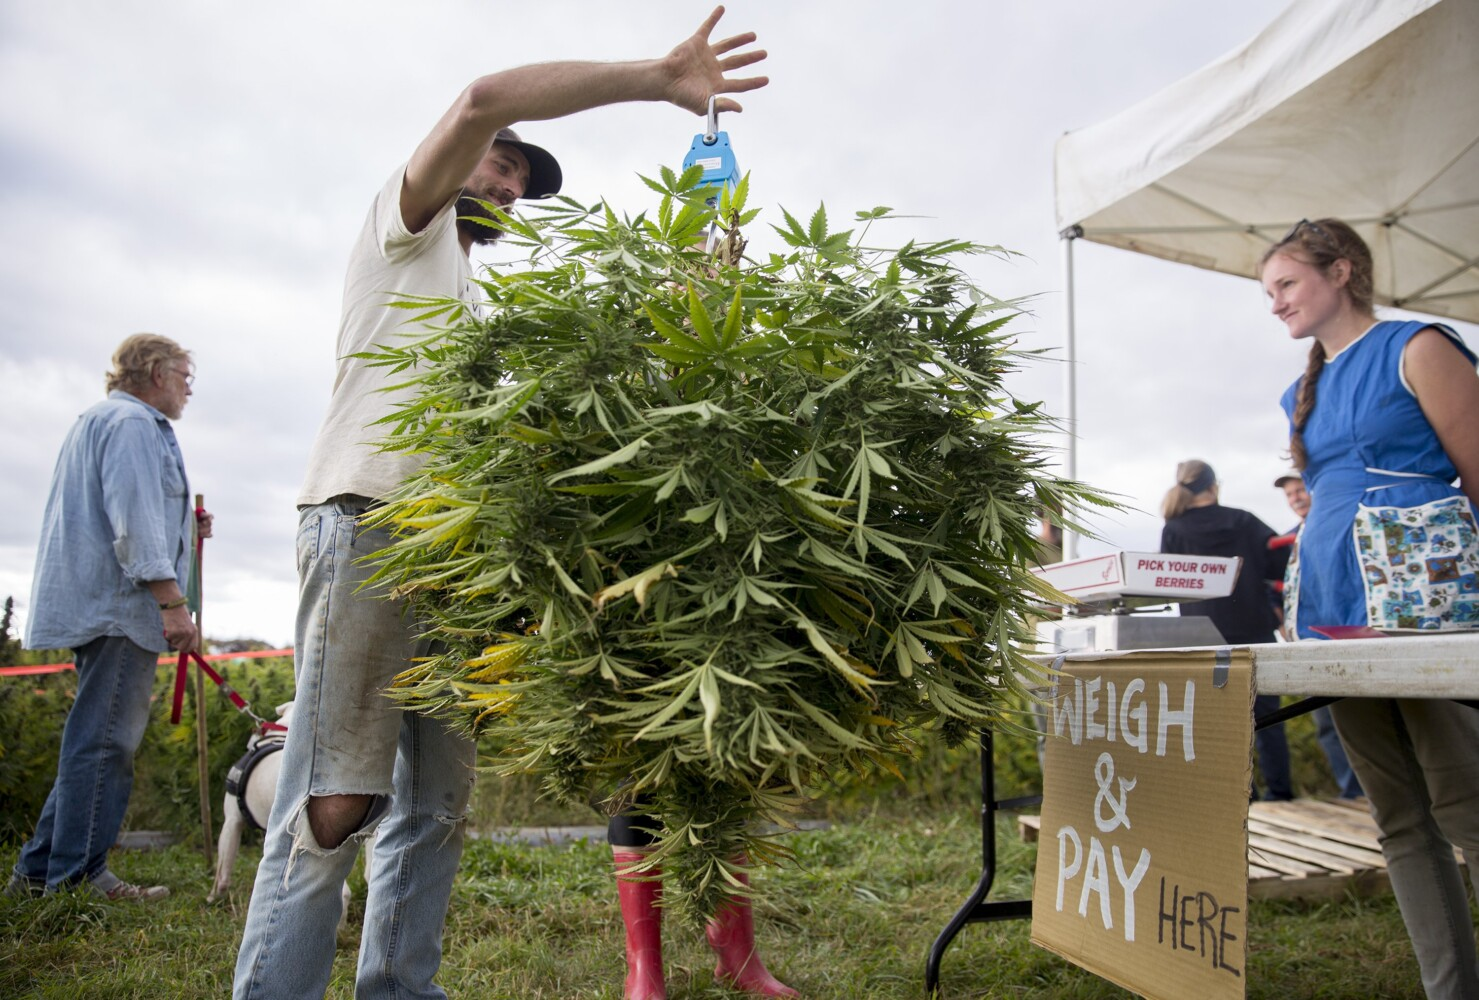 Maine's first pick-your-own hemp field opens in Whitefield - CentralMaine.com